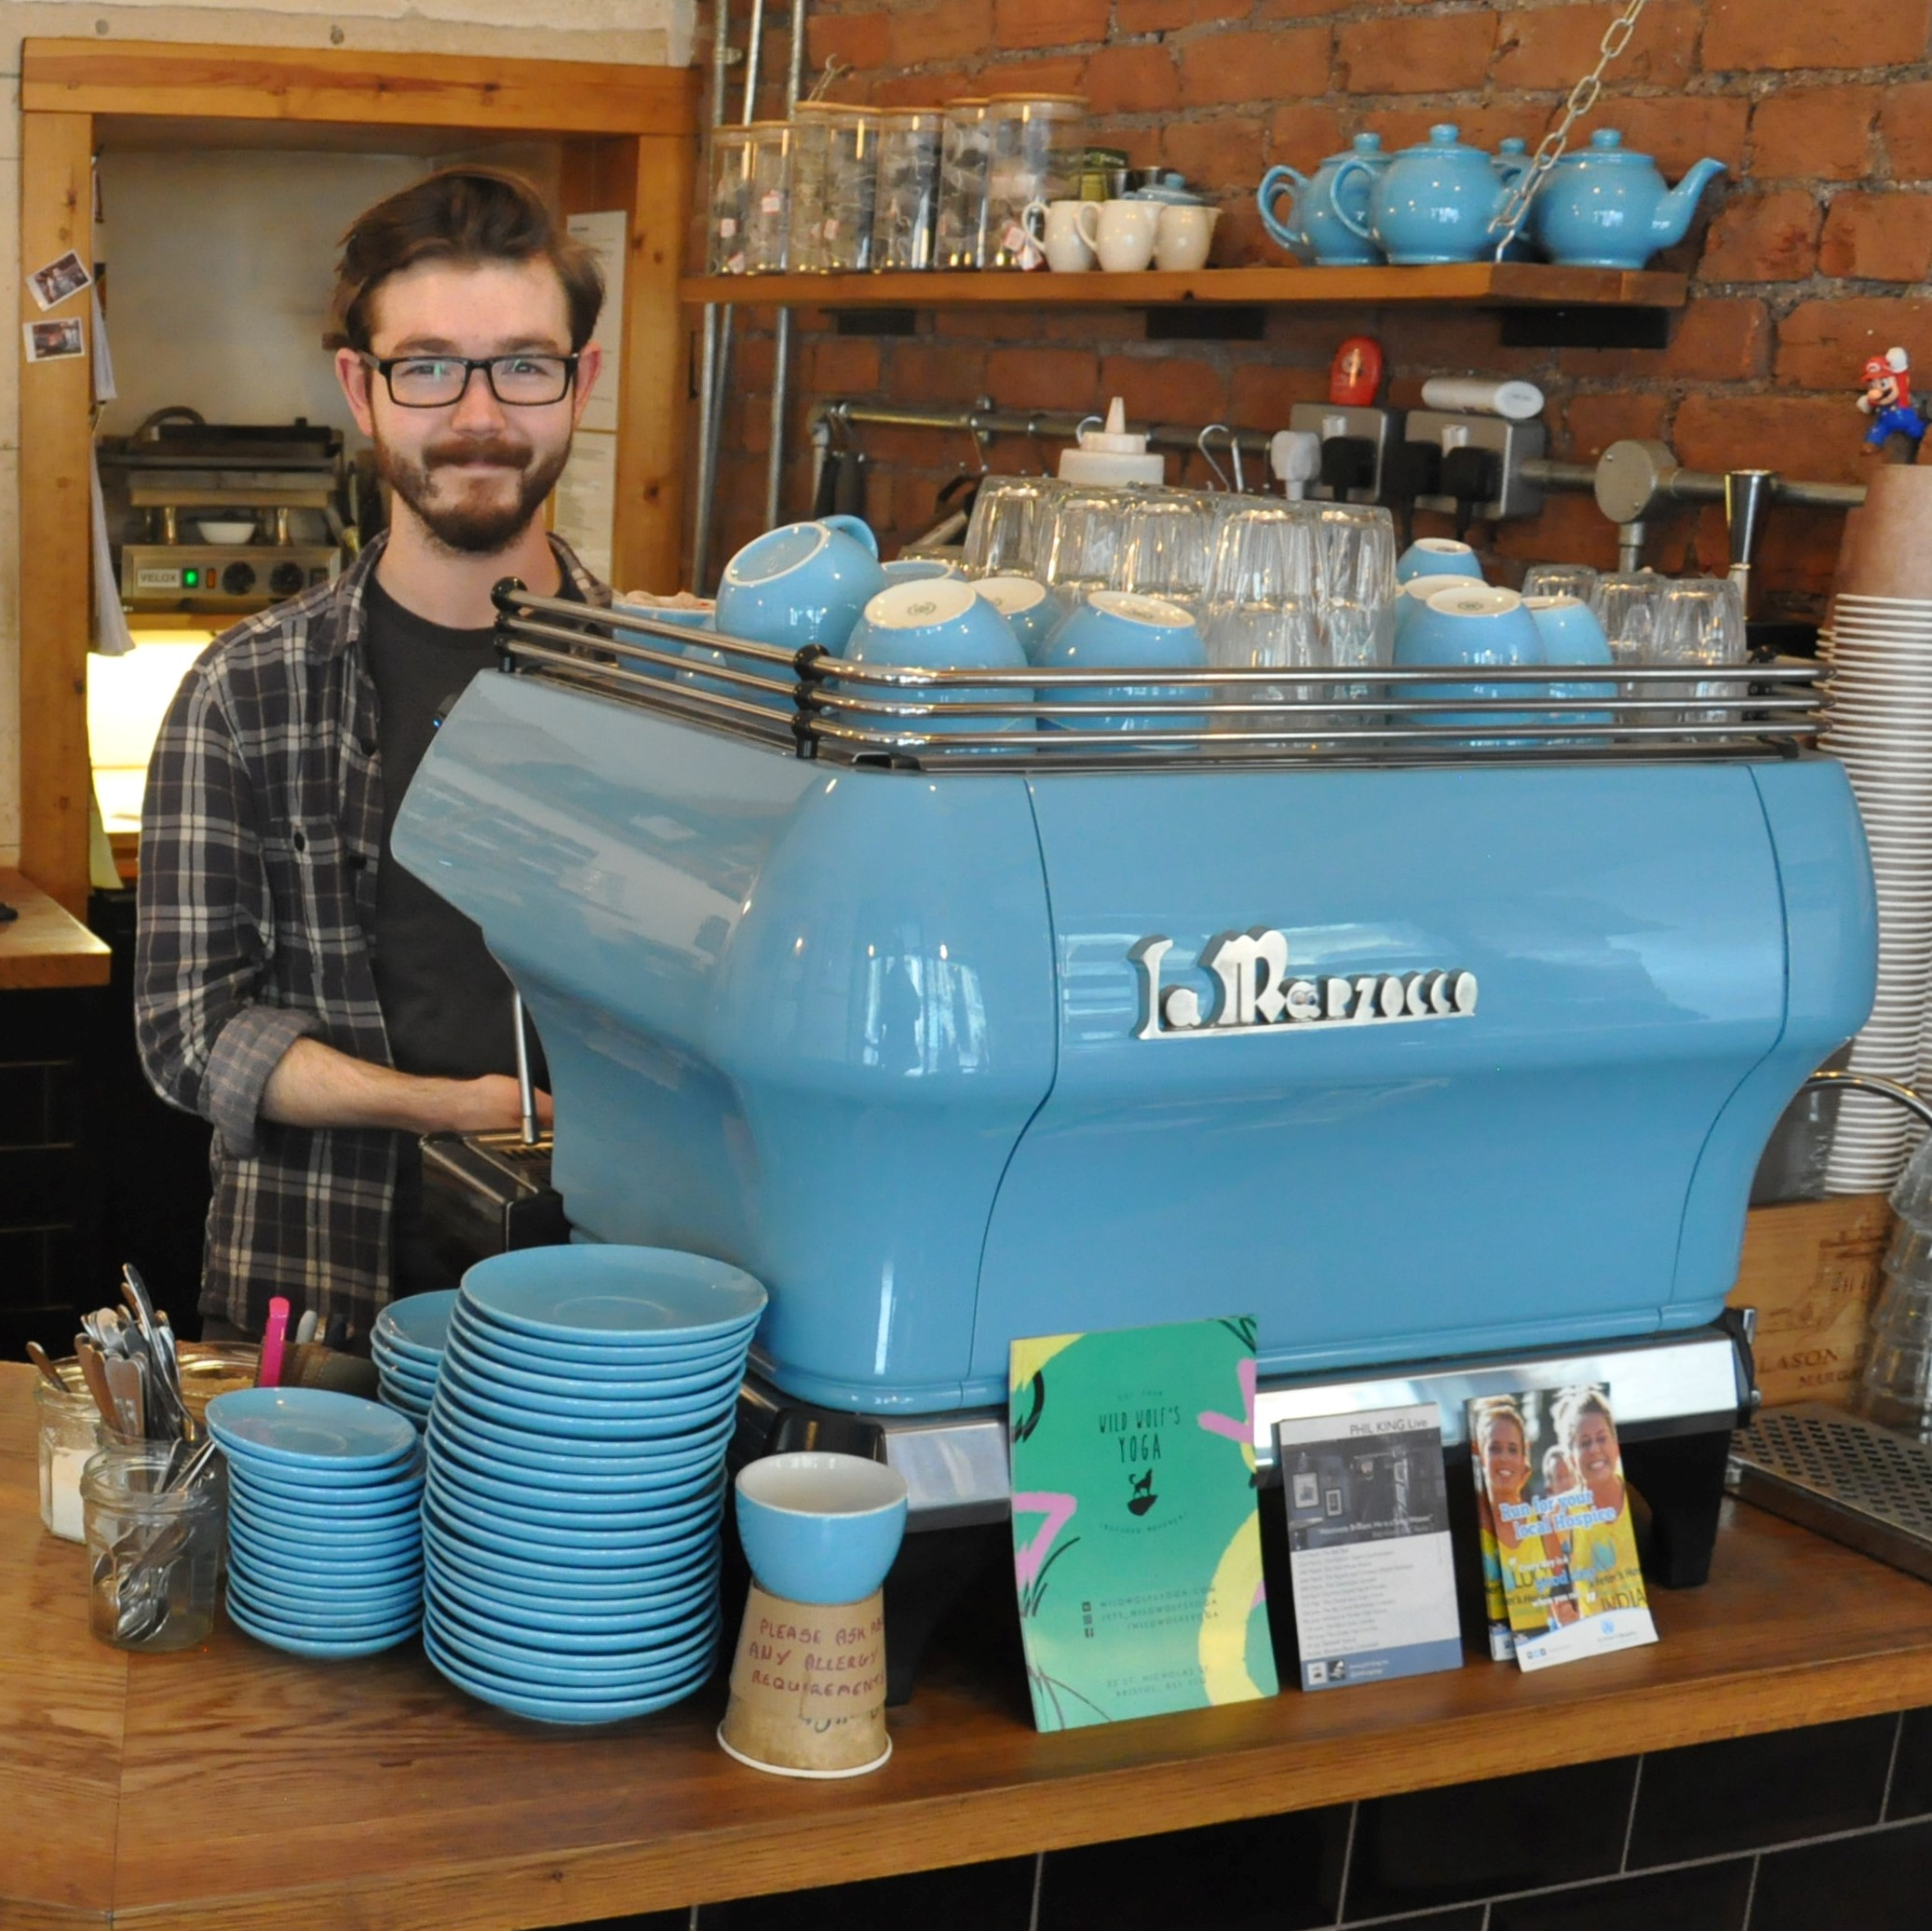 The lovely La Marzocco FB80 espresso machine, with its custom paint job, at Small St Espresso in Bristol.